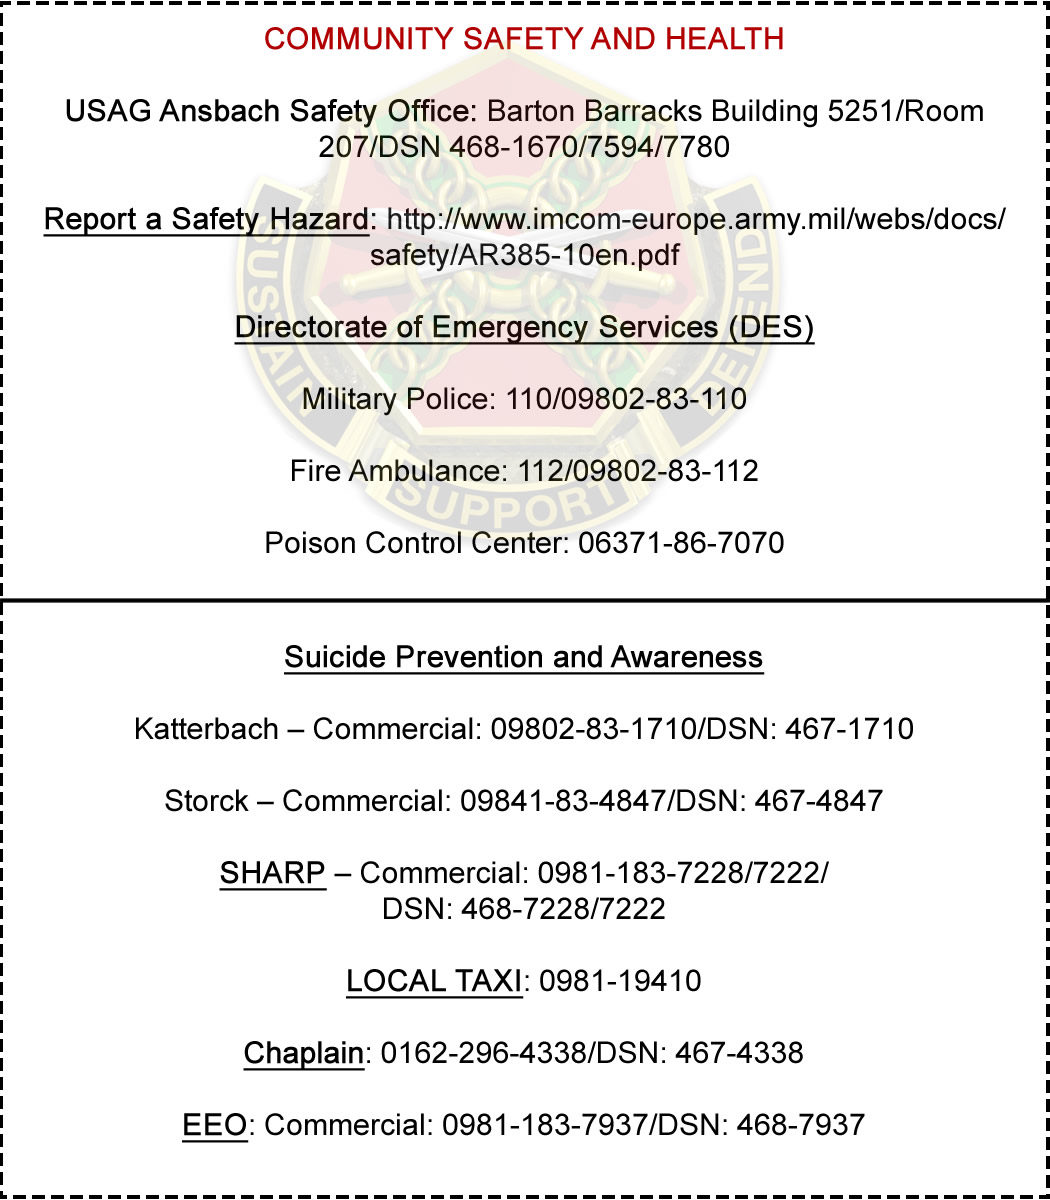 Safety and health quick-reference pocket card